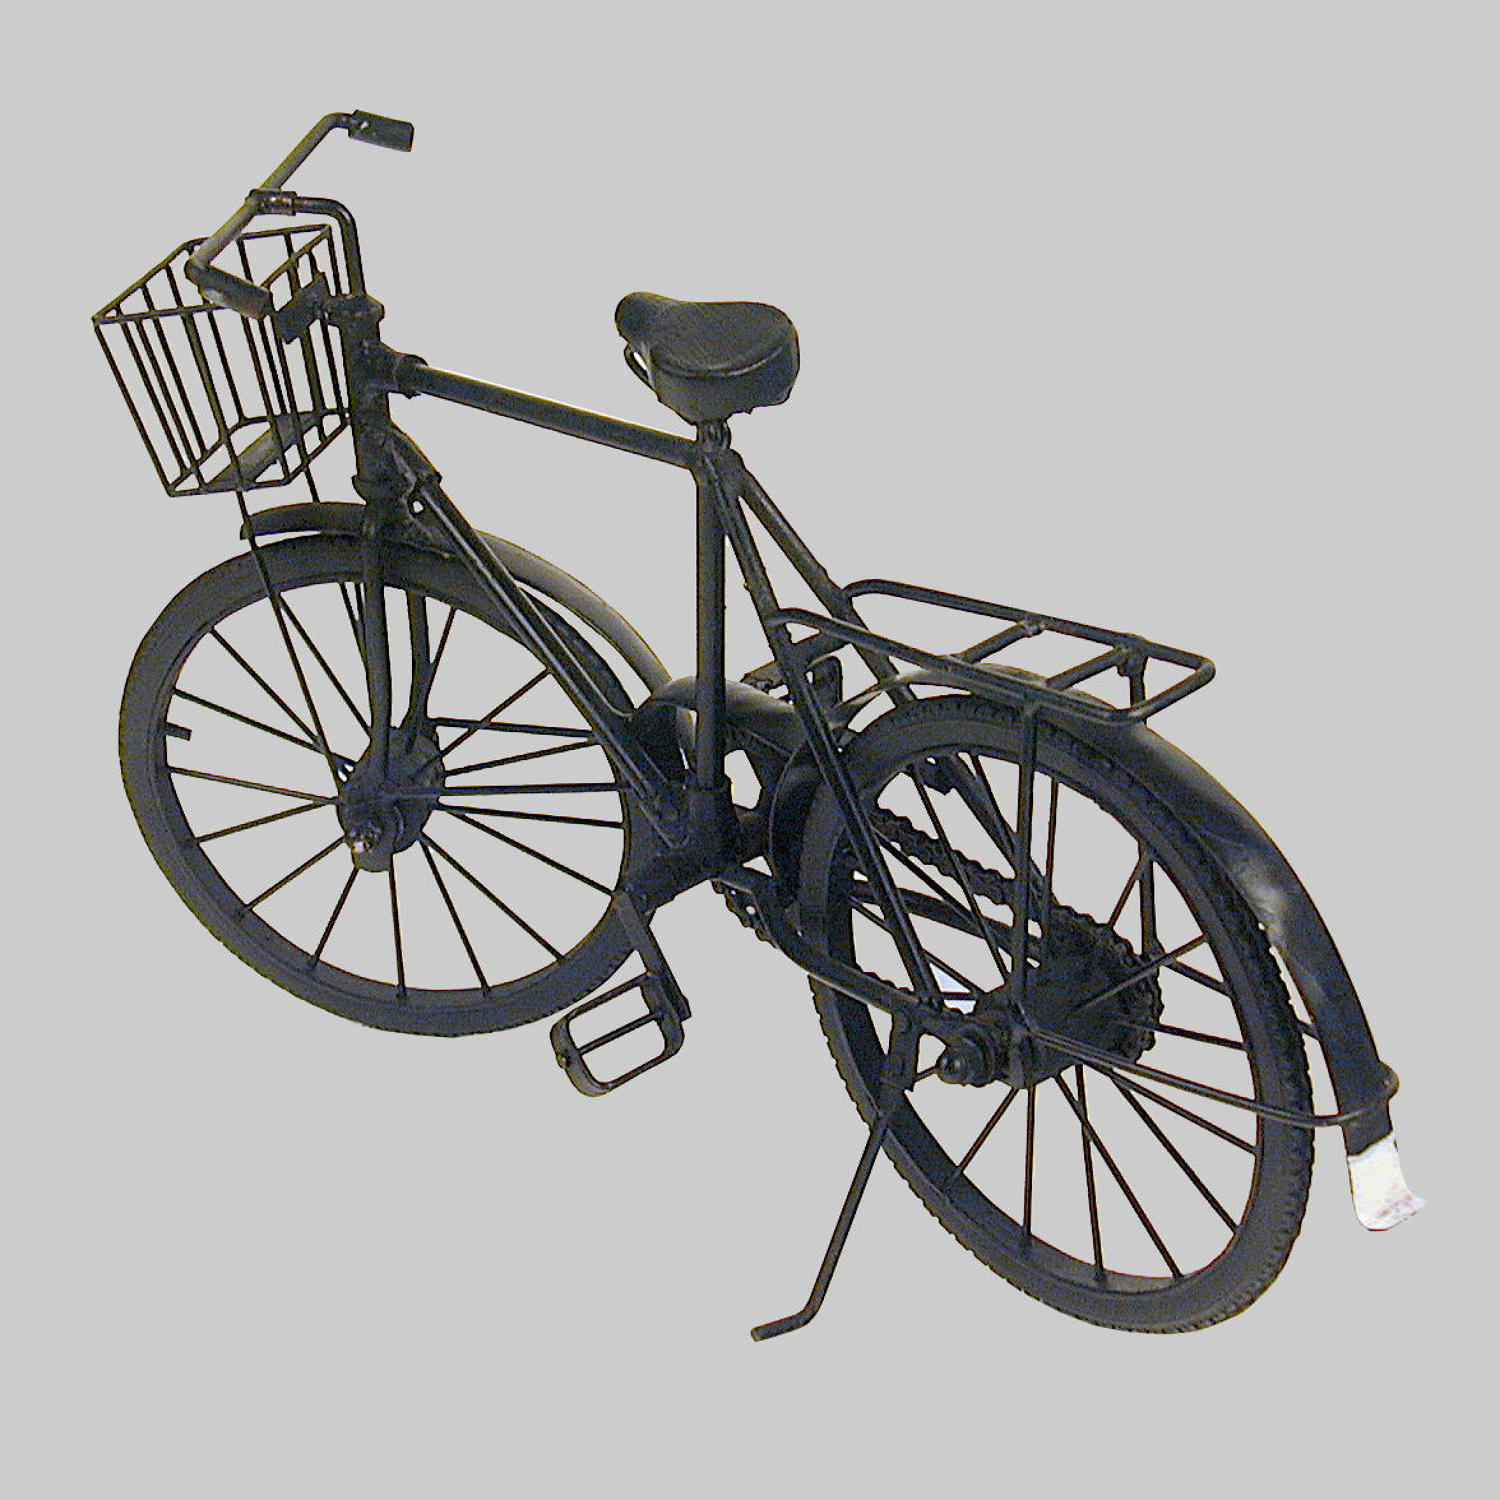 Vintage scratch built scale model of a bicycle